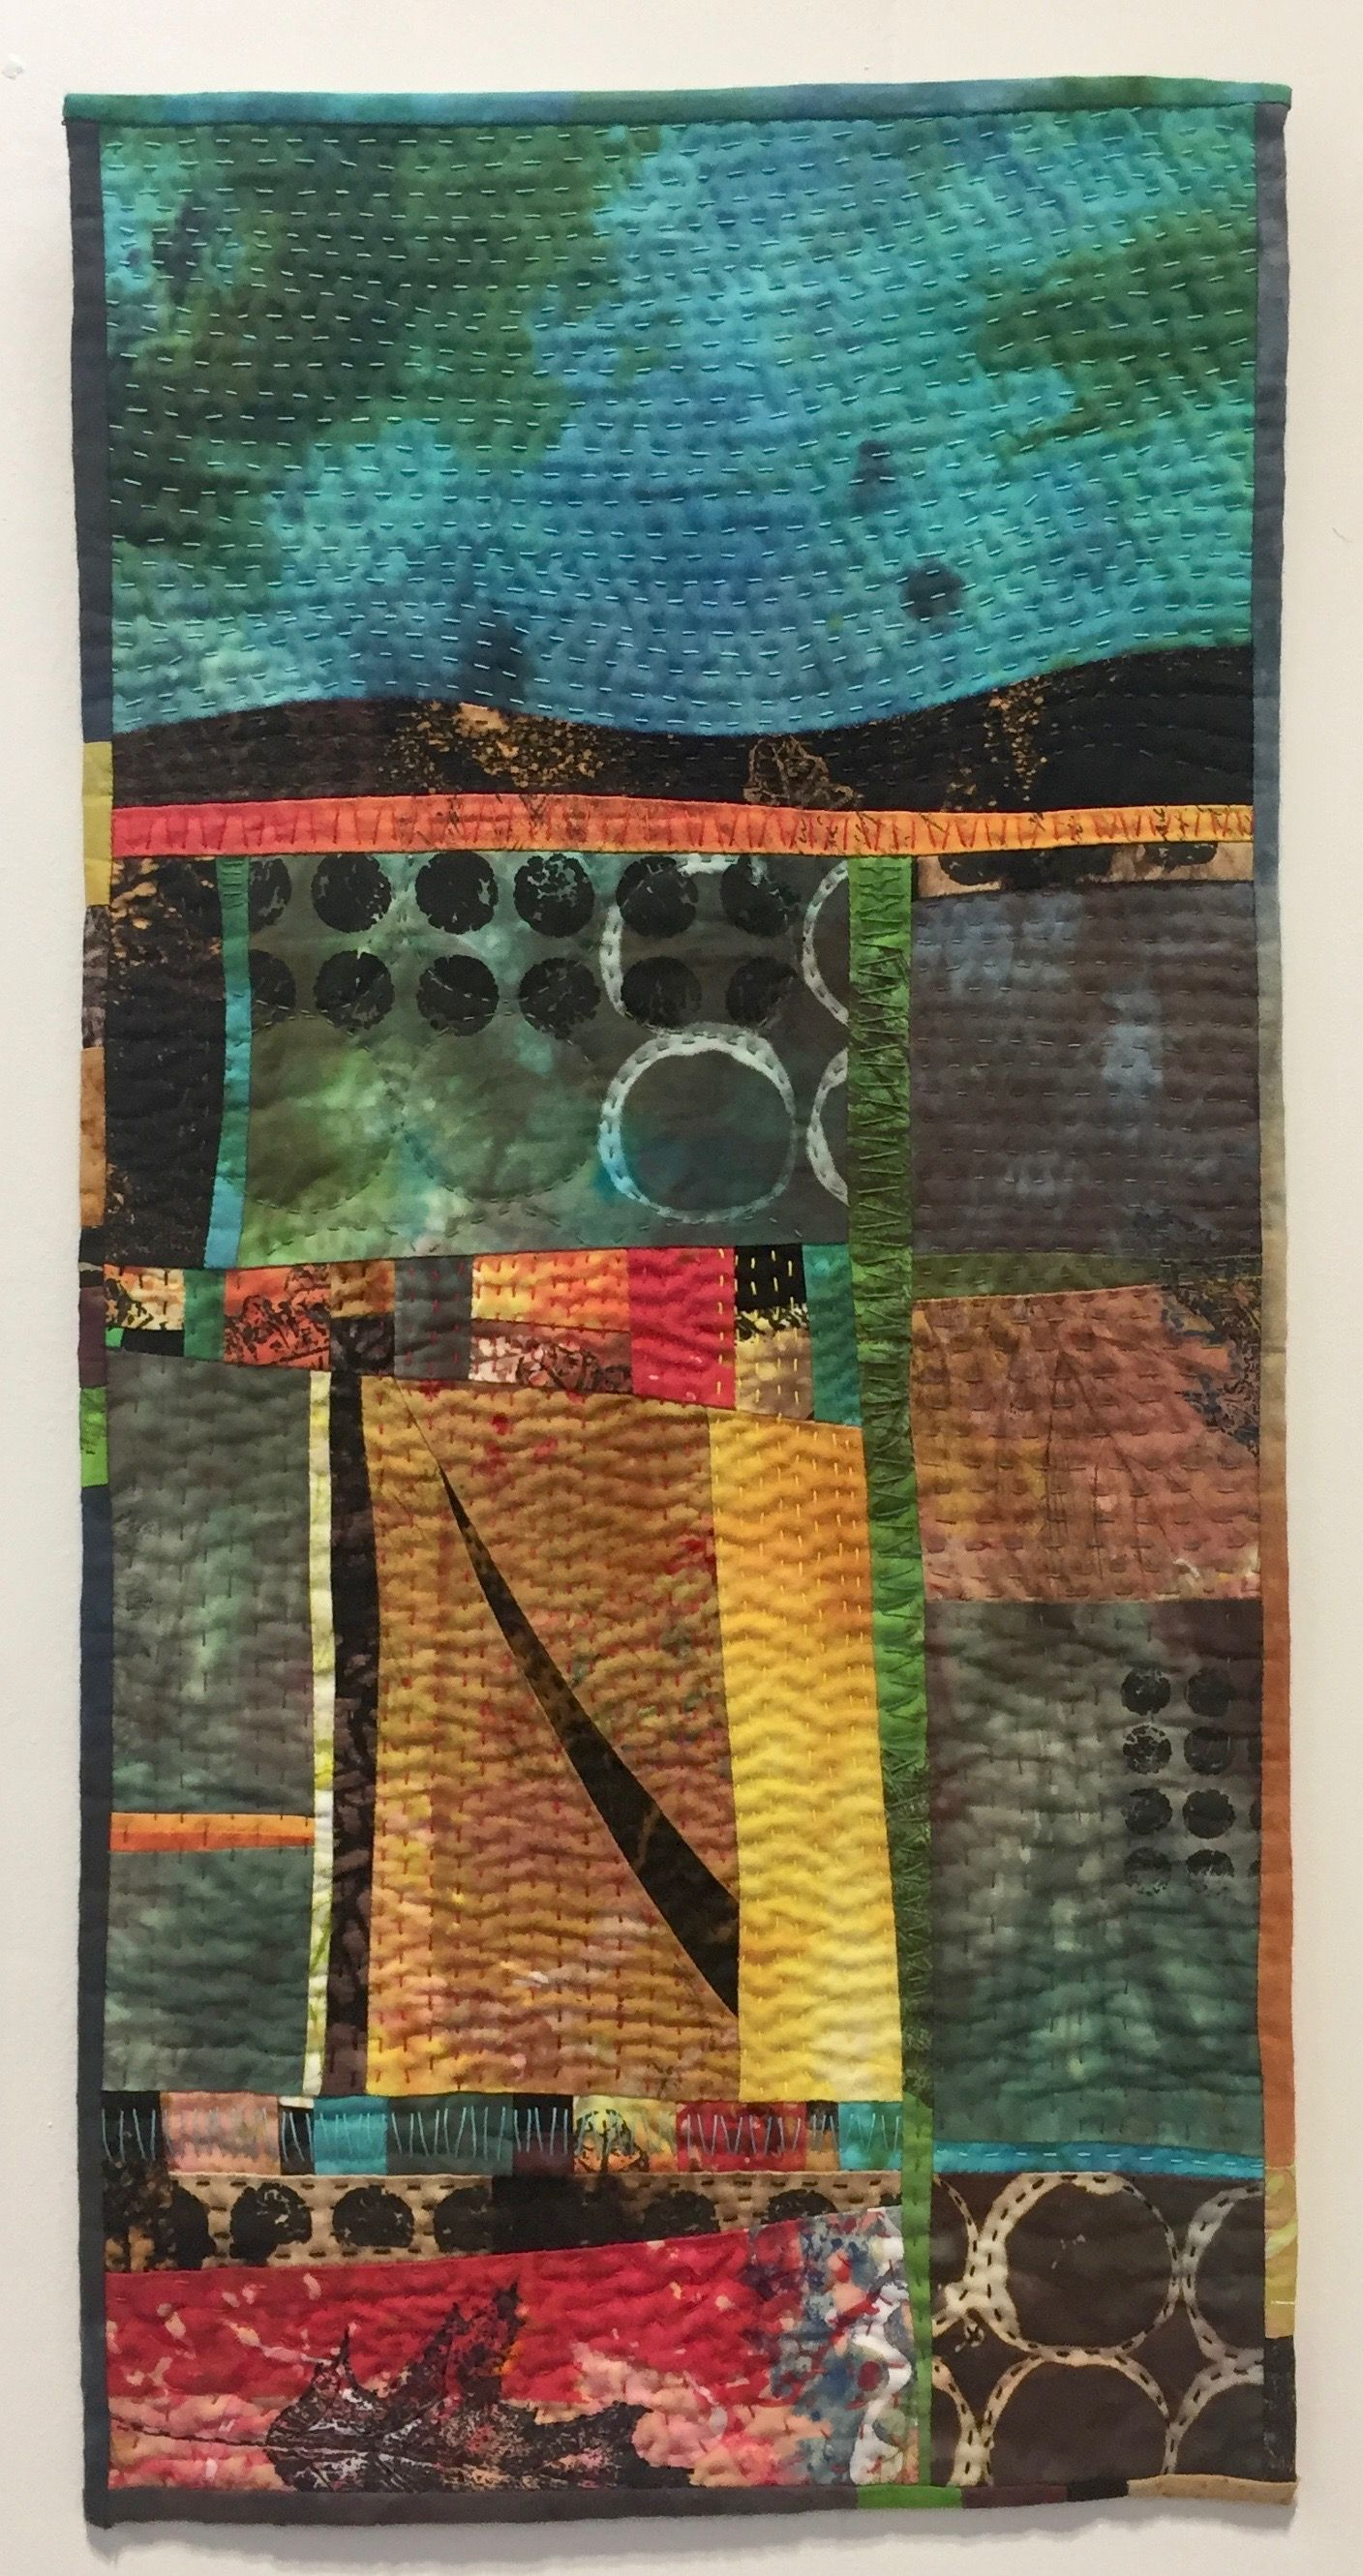 Quilt Festival Birmingham Autumn Landscape By Ineke Berlyn 1956 2017 Festival Of Quilts